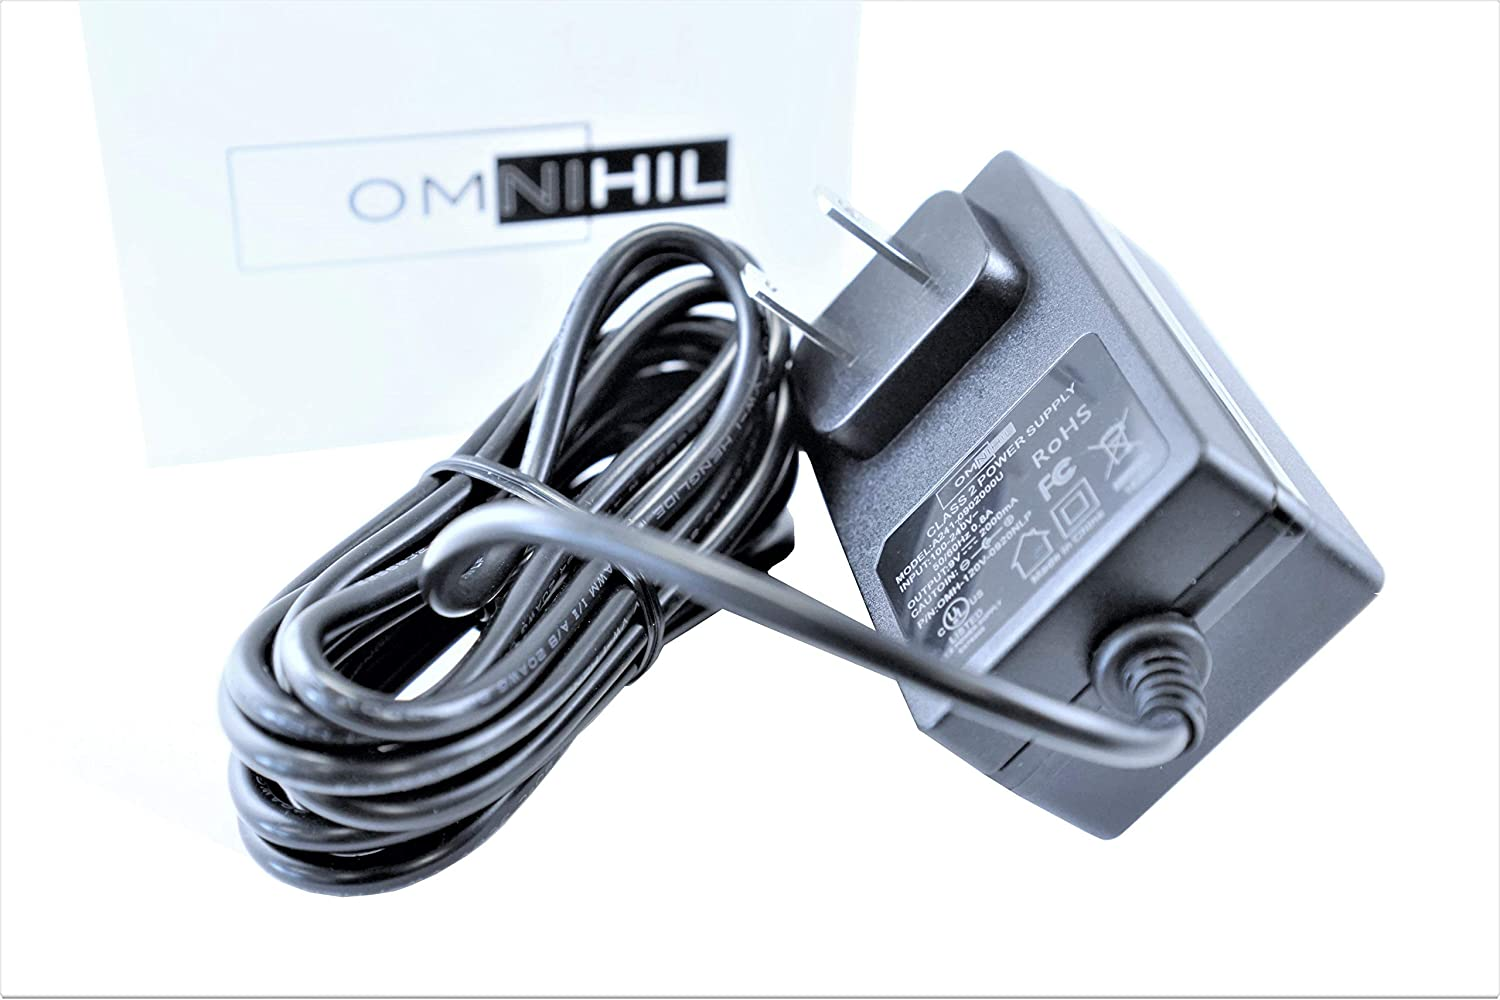 UL Listed OMNIHIL 8 Feet Long AC//DC Adapter Compatible with Luzan 5.1 Audio Gear Digital Sound Decoder Converter Power Supply Adaptor